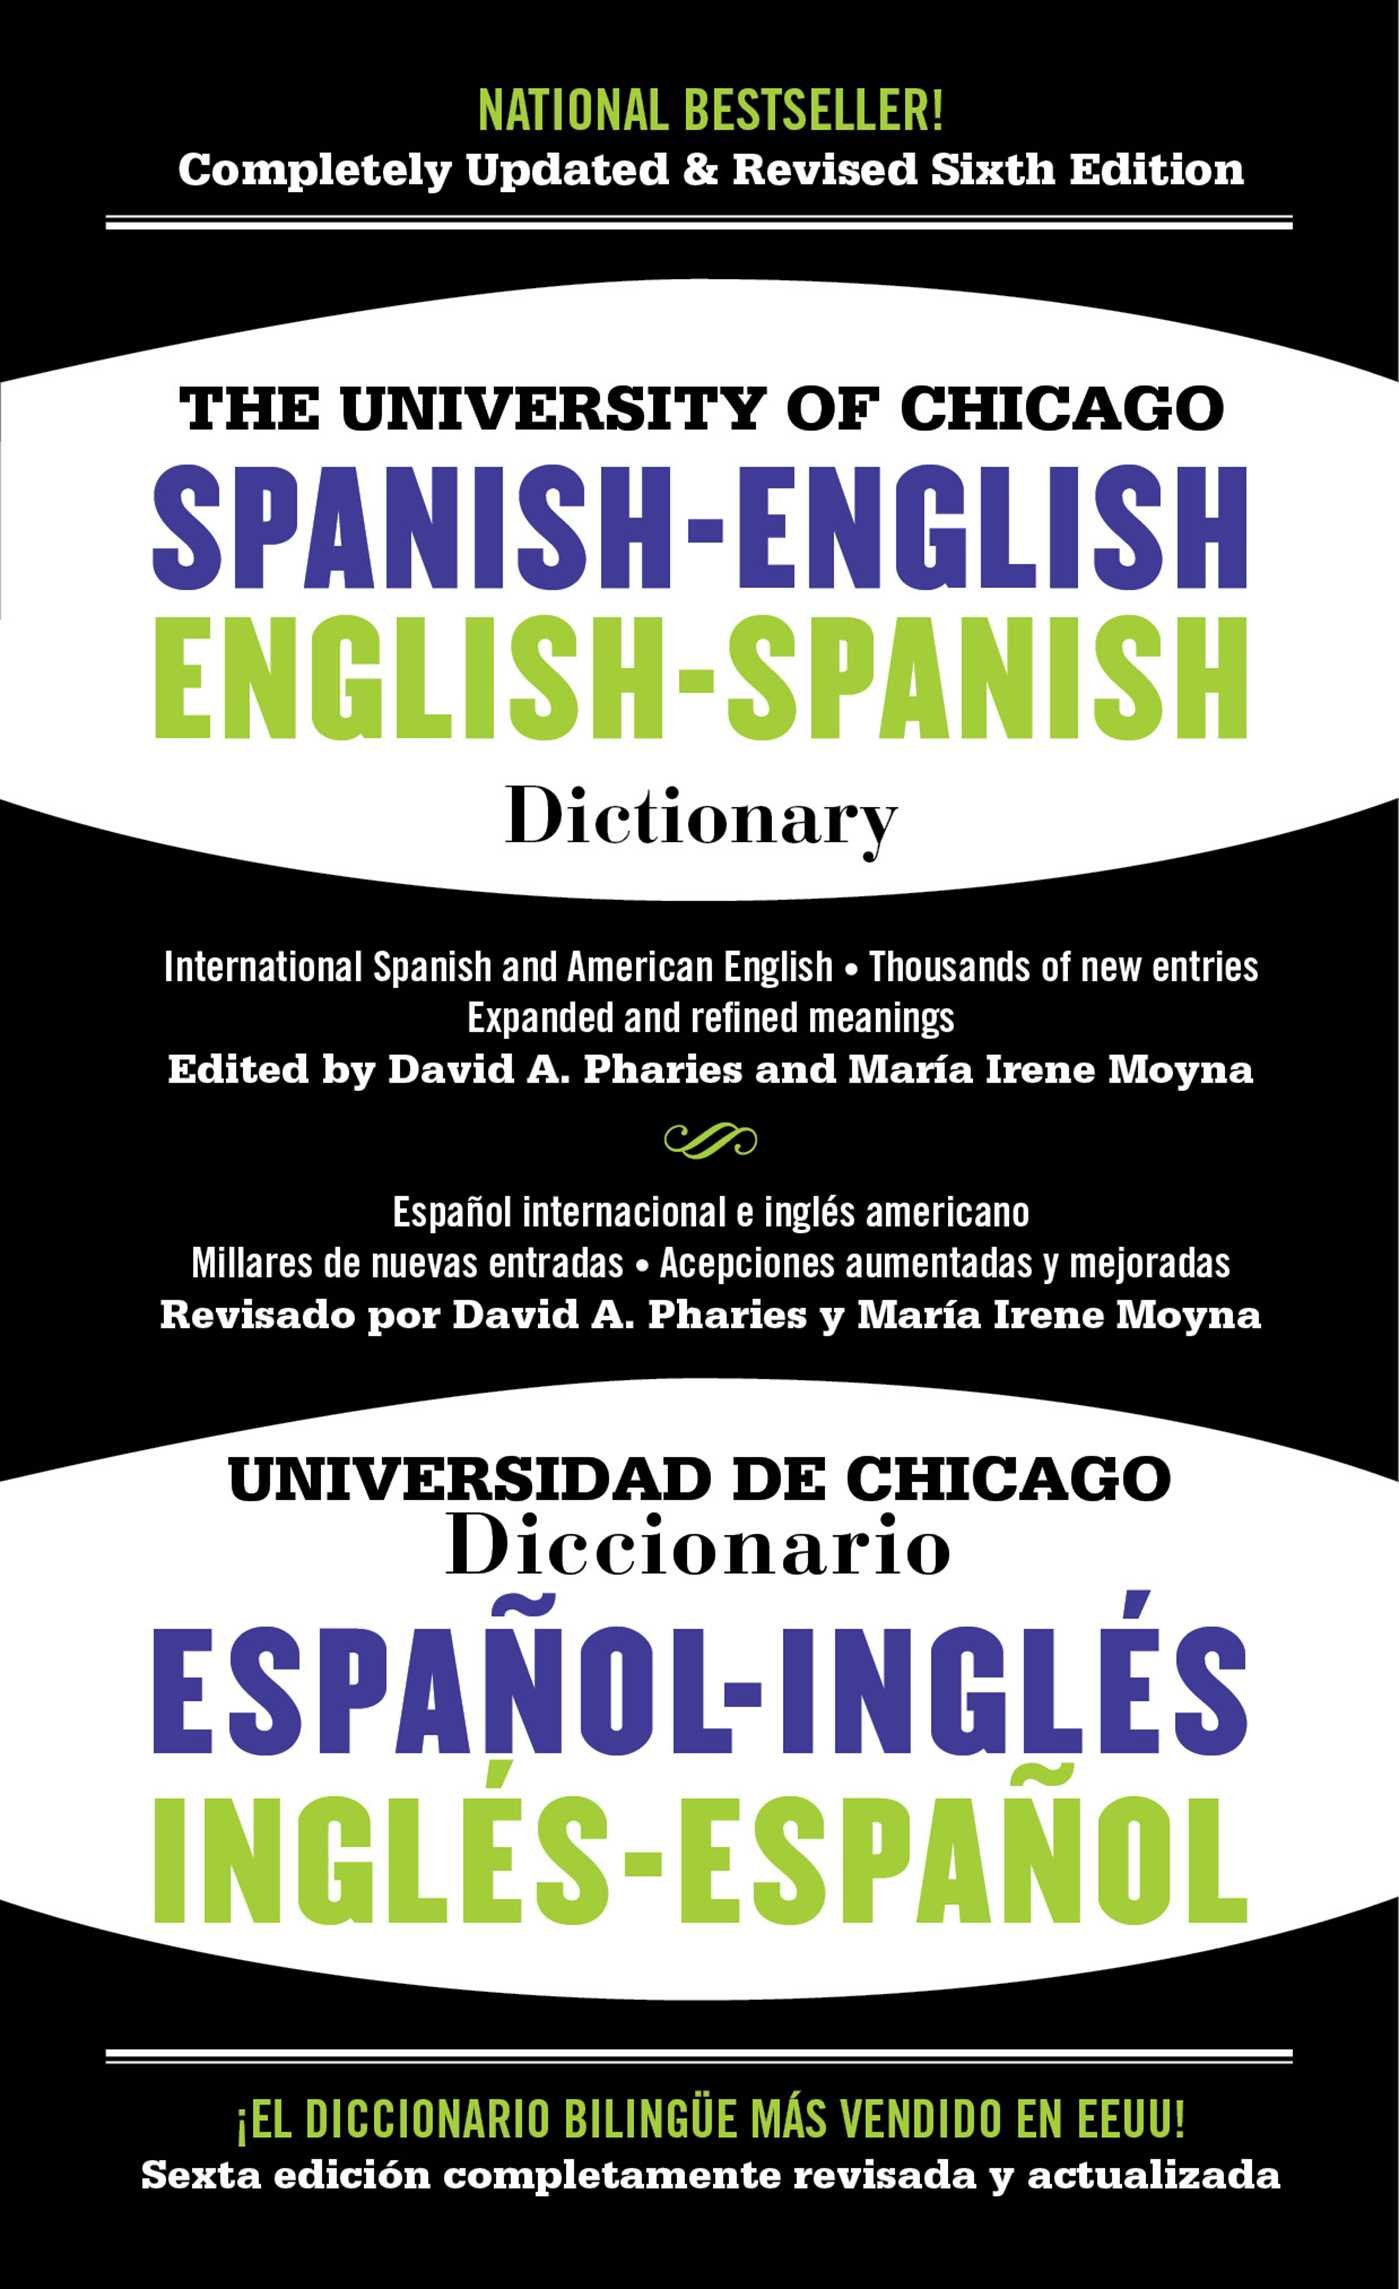 The university of chicago spanish english dictionary 6th edition david a pharies mar a irene moyna 9781451669107 amazon com books